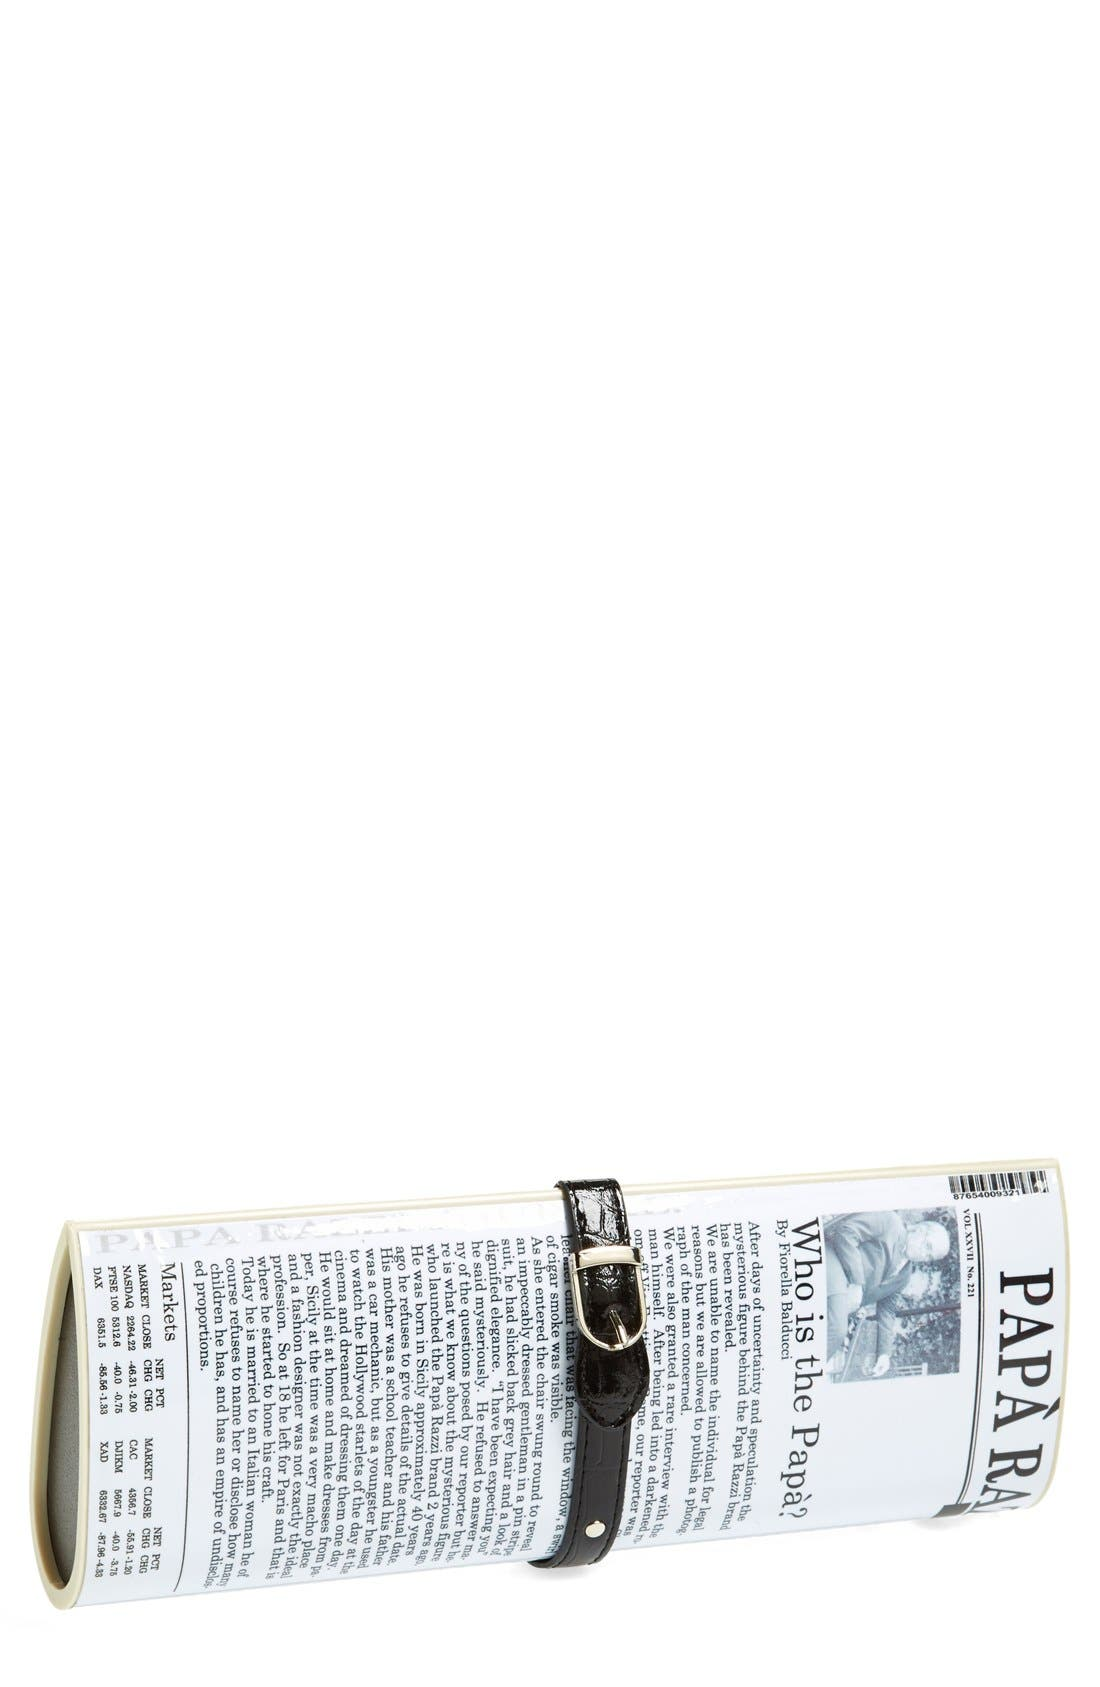 Main Image - Papà Razzi 'Nadine' Newspaper Clutch